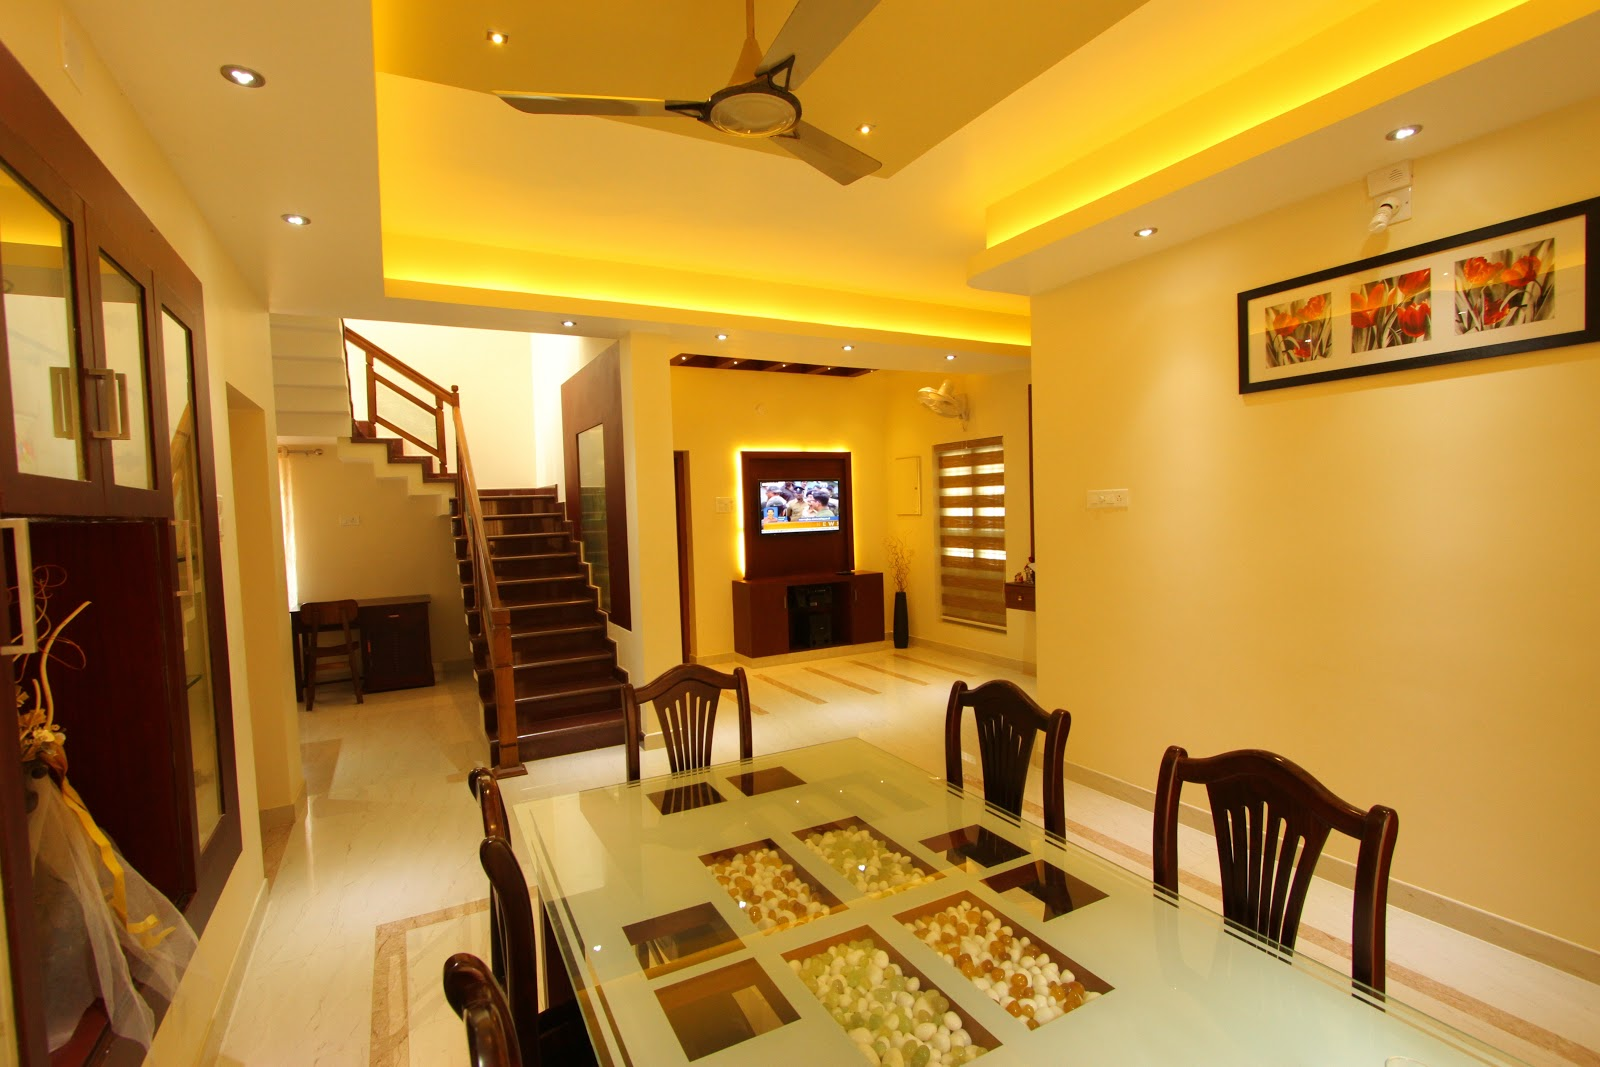 Shilpakala interiors award winning home interior design for Designa interiors